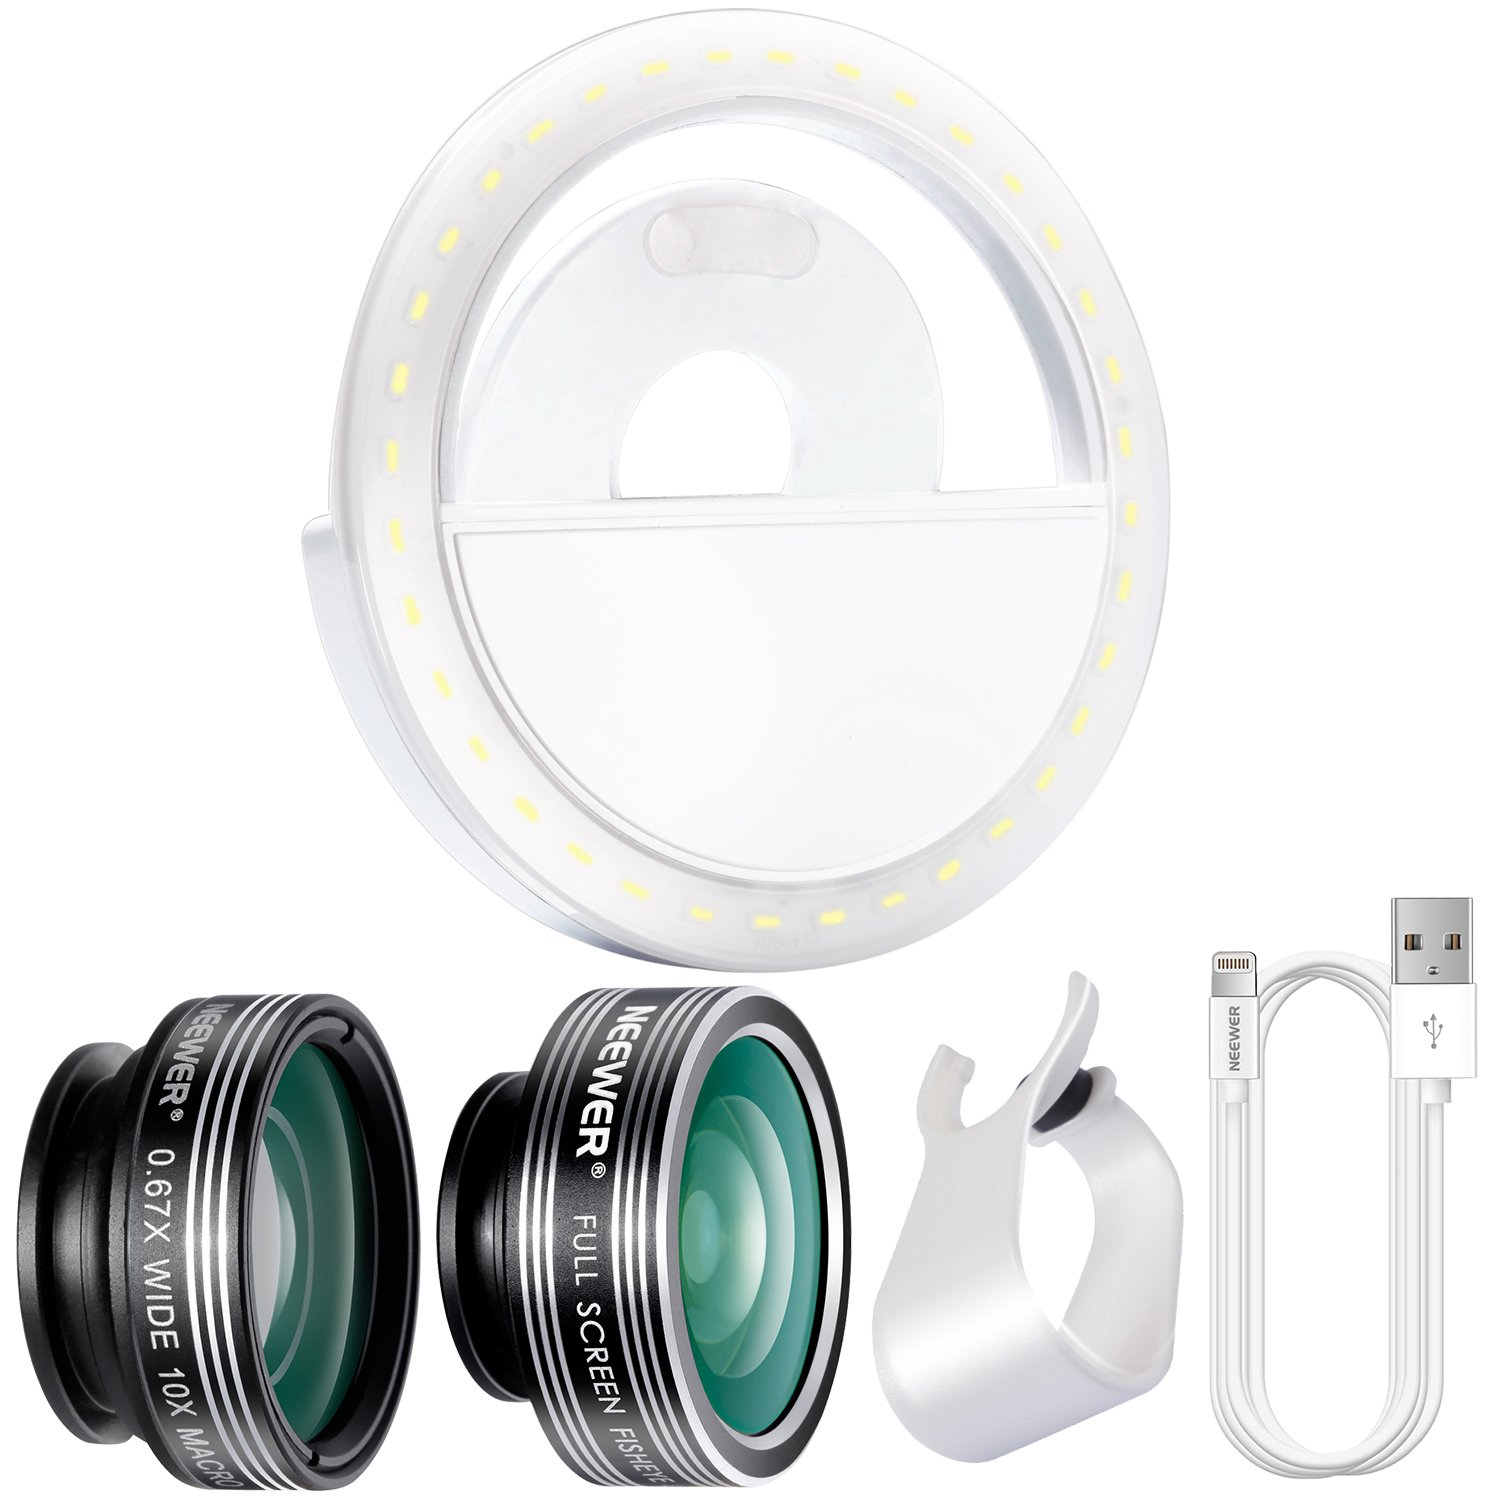 Neewer Cellphone Photography Clip-on Lens and Light Kit: 3-in-1 Lens Kit, LED Selfie Ring Light with 3 Level Brightness, 3.3 feet/1 meter Data USB Sync and Charging 8 Pin Cable for iPhone by Neewer